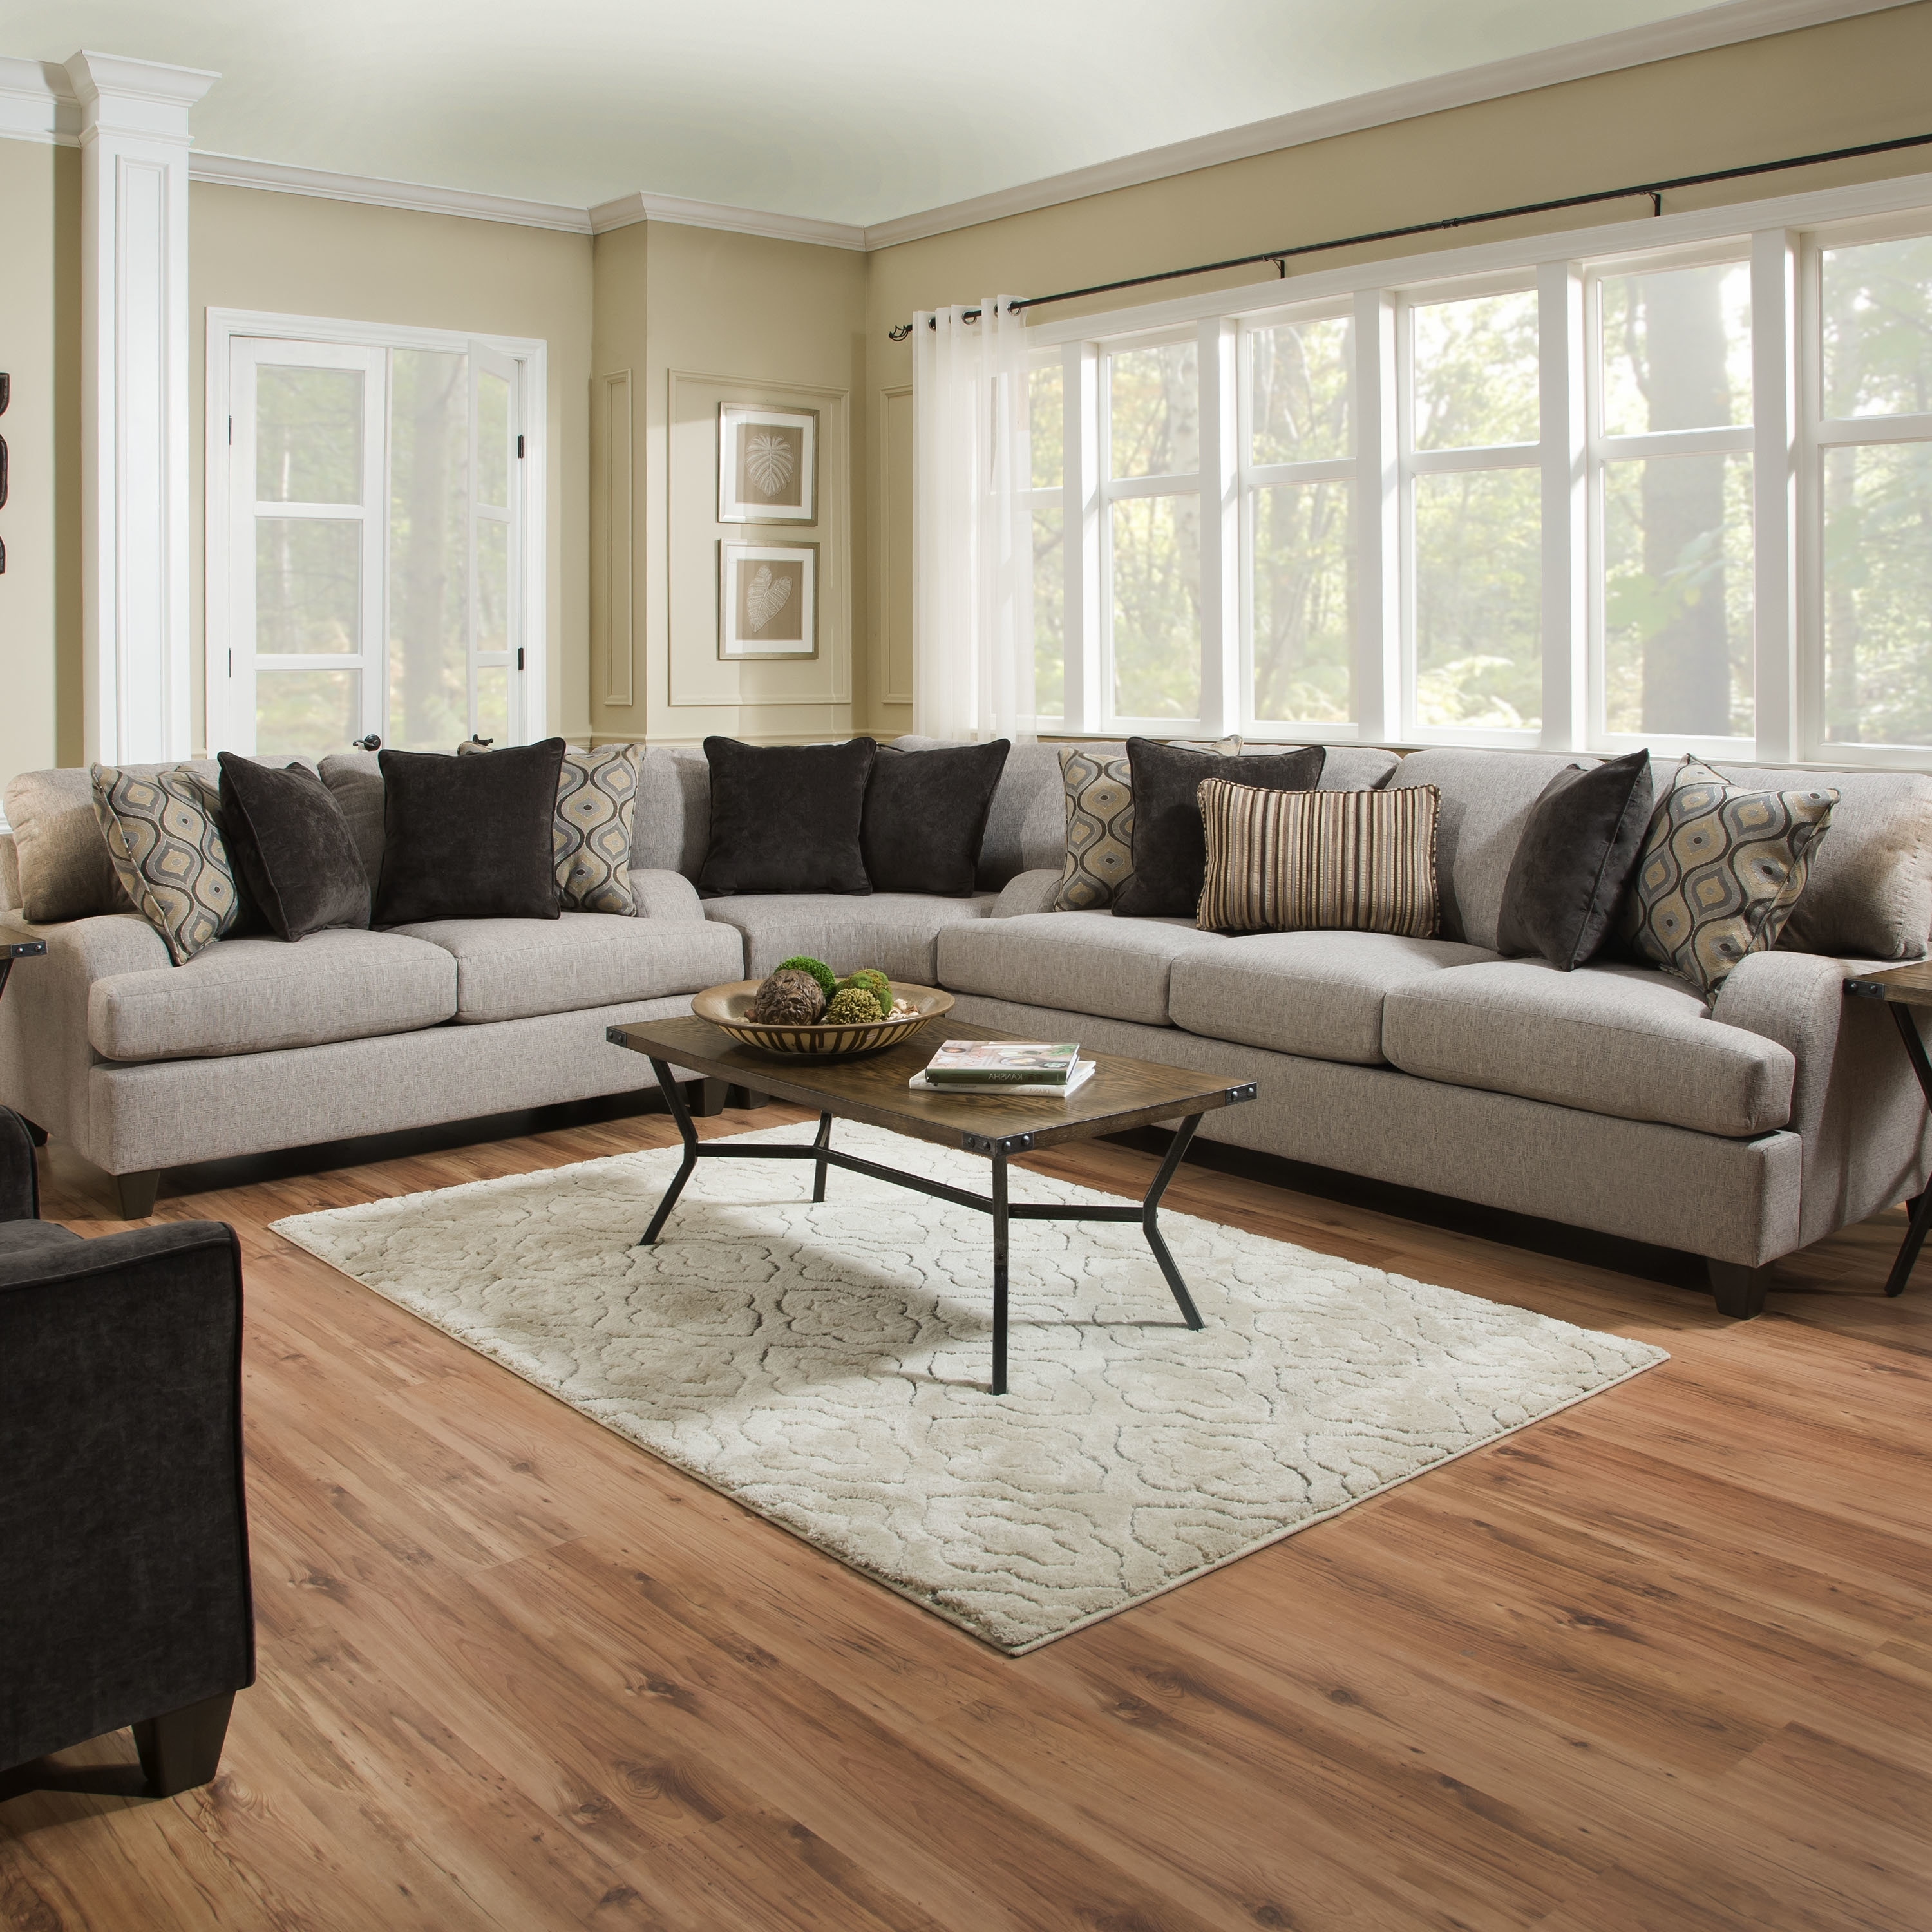 Wayfair Regarding Latest Extra Large Sofas (View 8 of 15)